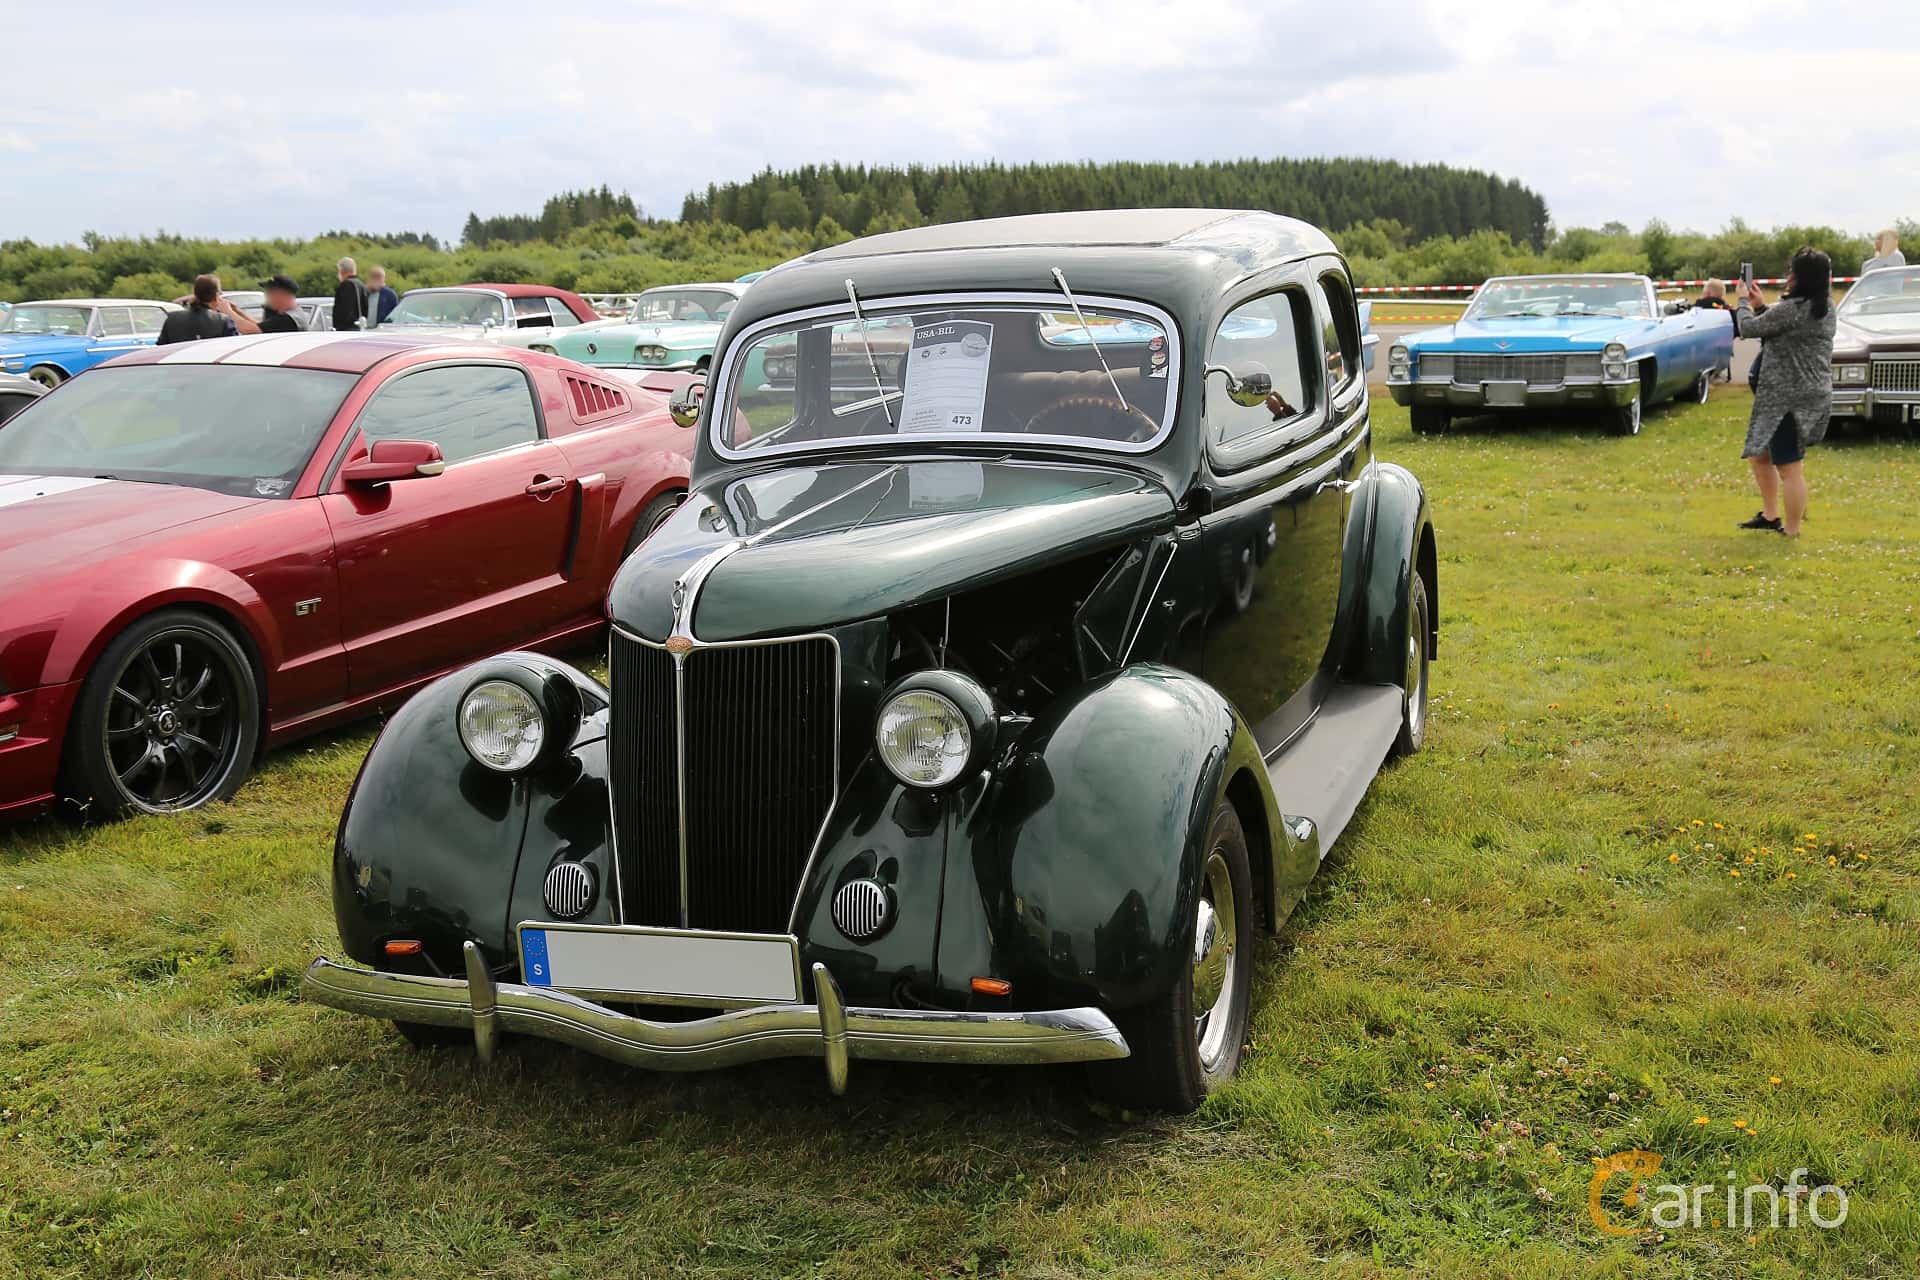 Ford Model 68 Tudor Touring Sedan 3.6 V8 Manuell, 86hk, 1936 at Falköping Nasco Yankee Meet 2017